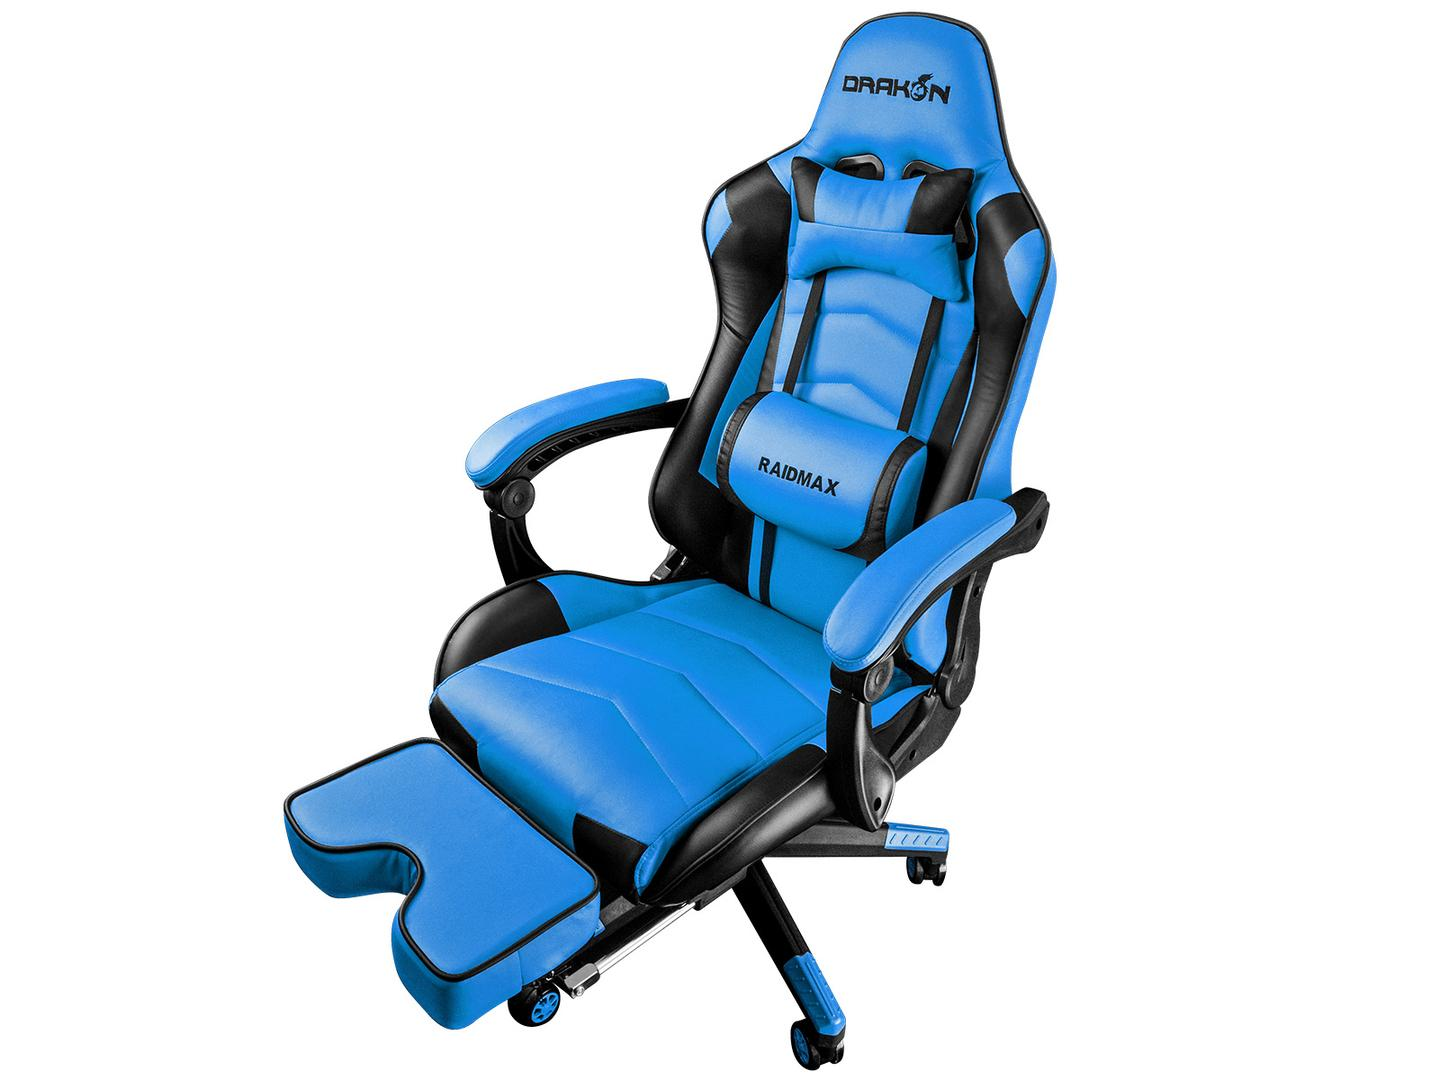 Video Game Chairs For Sale Gaming Room Chairs Prices Brands